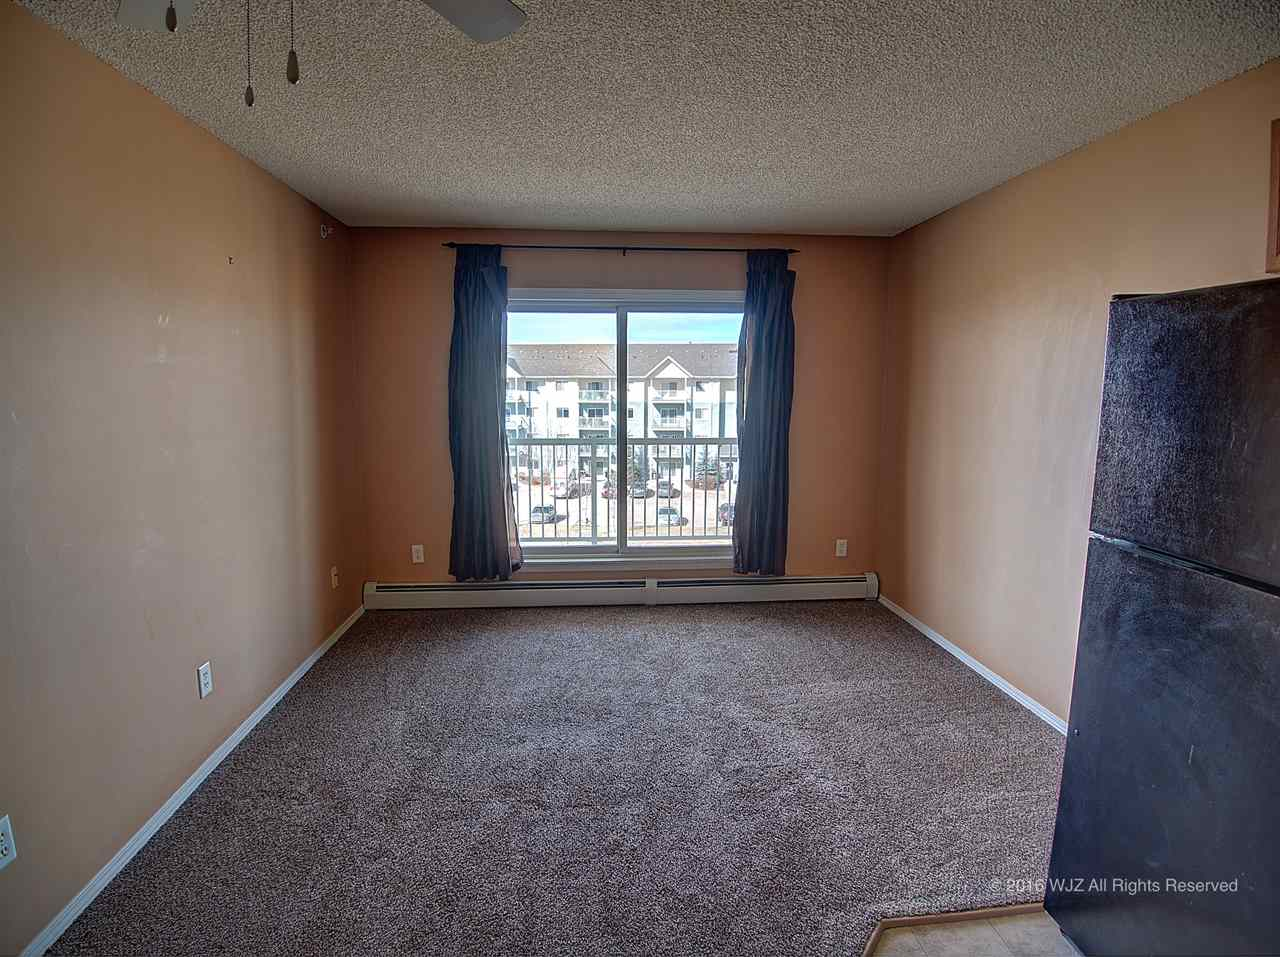 Photo 10: 423 70 woodsmere Close: Fort Saskatchewan Condo for sale : MLS(r) # E4031999